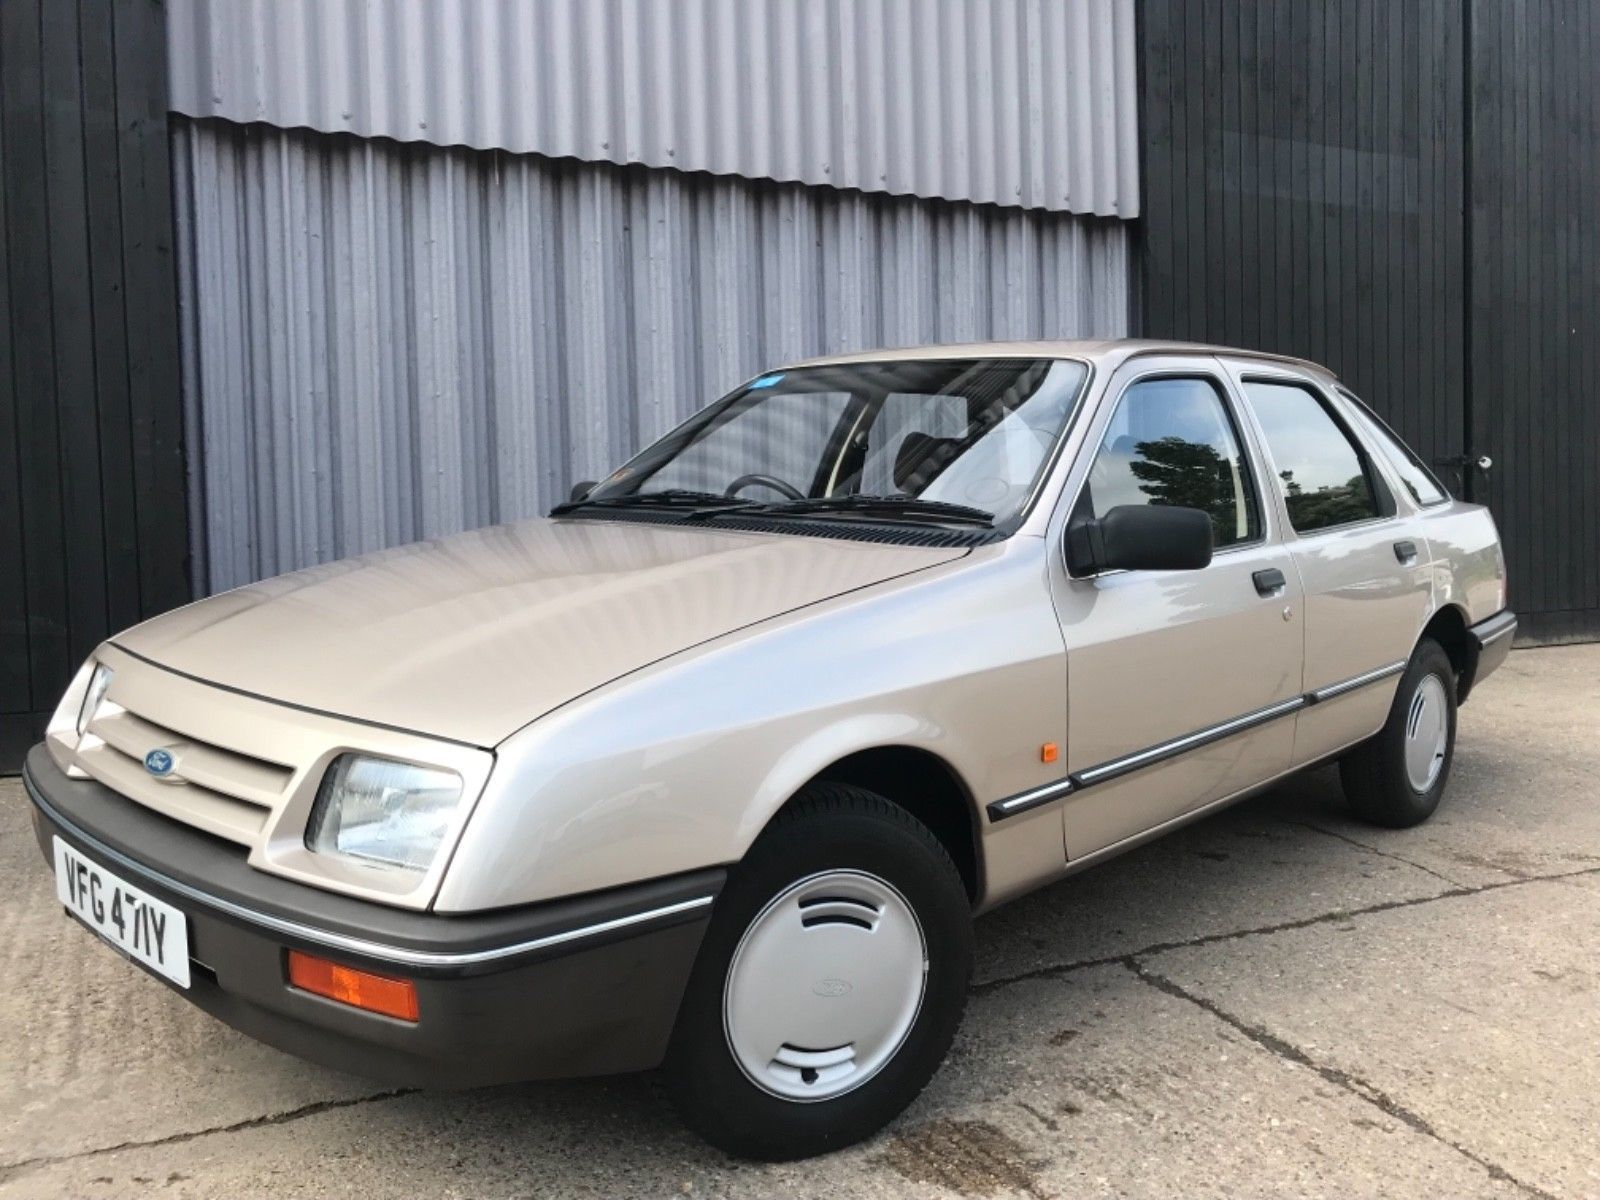 1983 Ford Sierra 2 0gl 53 000miles Time Warp Condition Simply